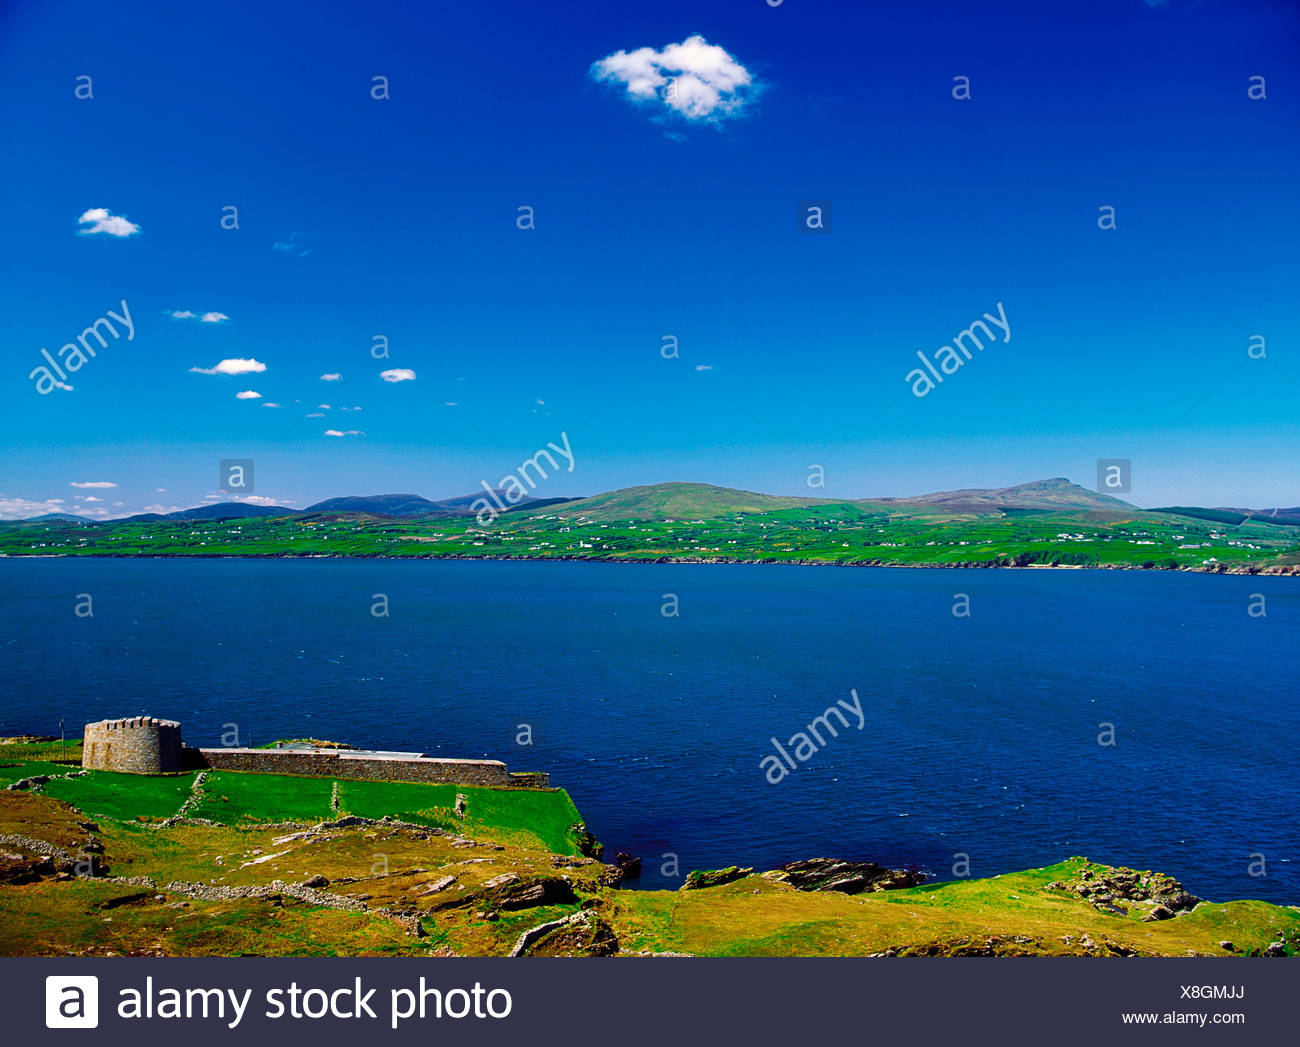 Lough Swilly, Co Donegal, Ireland; Napoleonic Fort - Stock Image